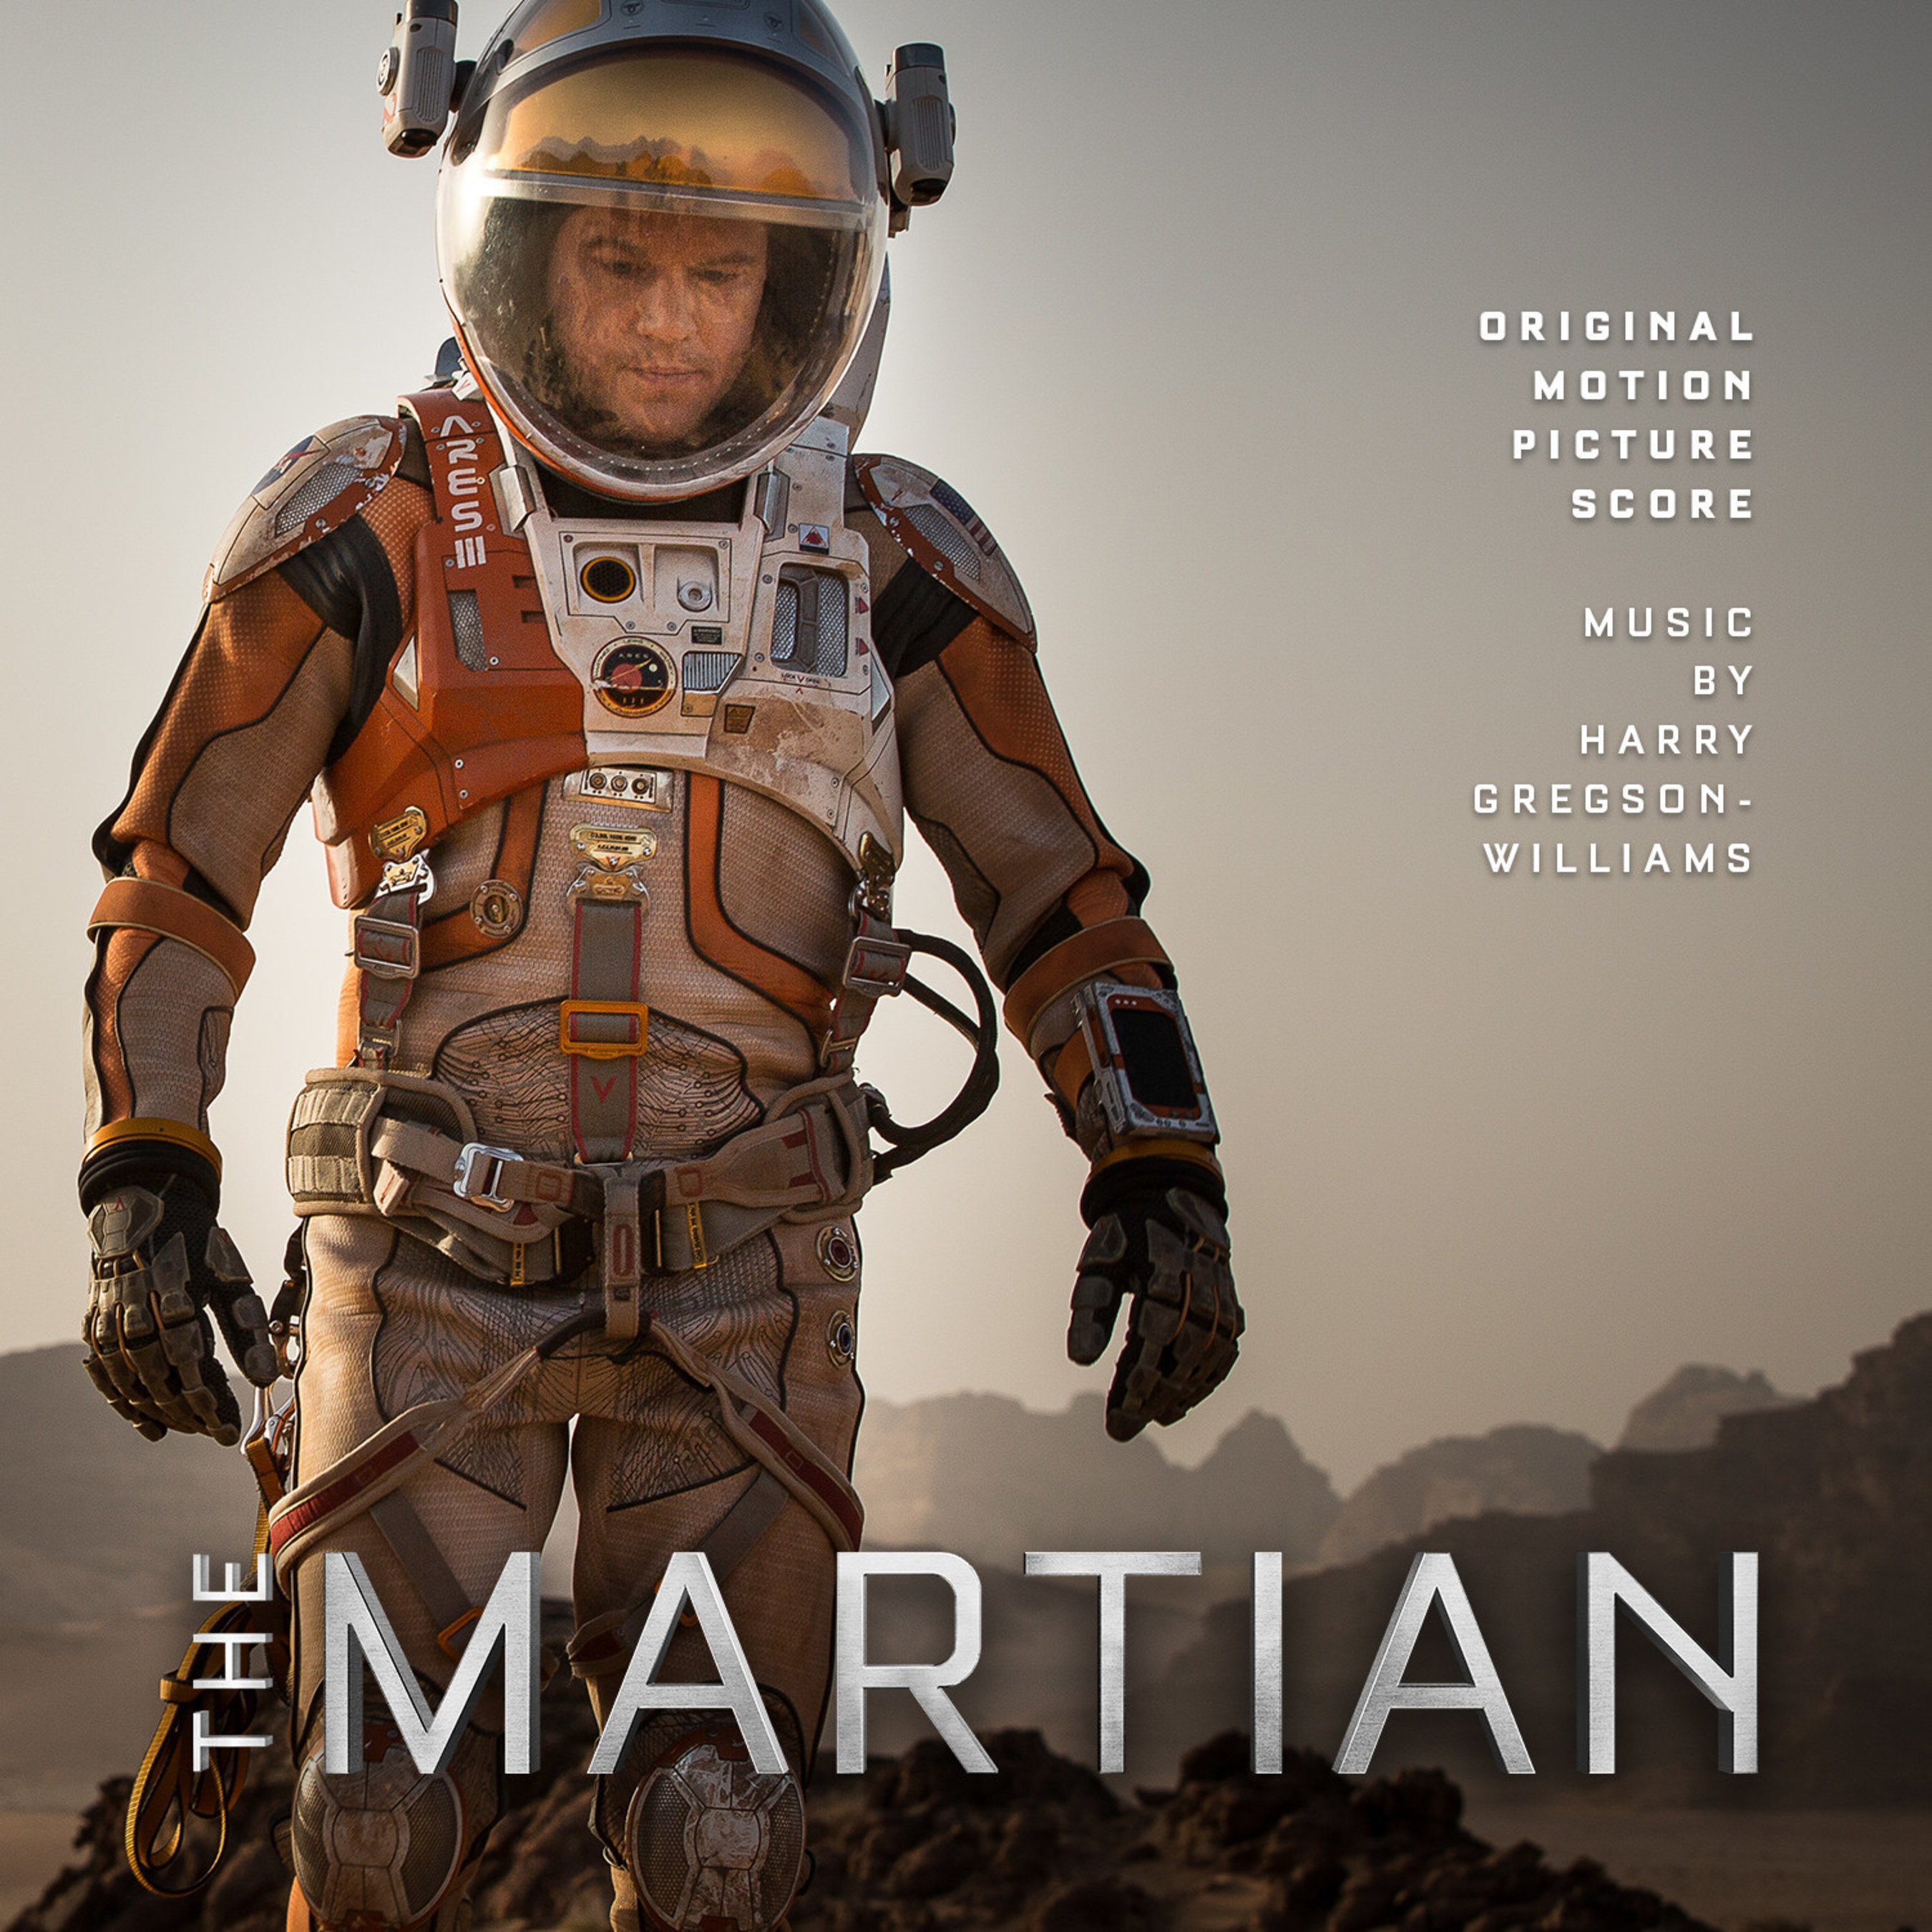 """""""SONGS FROM THE MARTIAN"""" AND """"ORIGINAL MOTION PICTURE SCORE"""" BY HARRY GREGSON-WILLIAMS AVAILABLE DIGITALLY TODAY"""